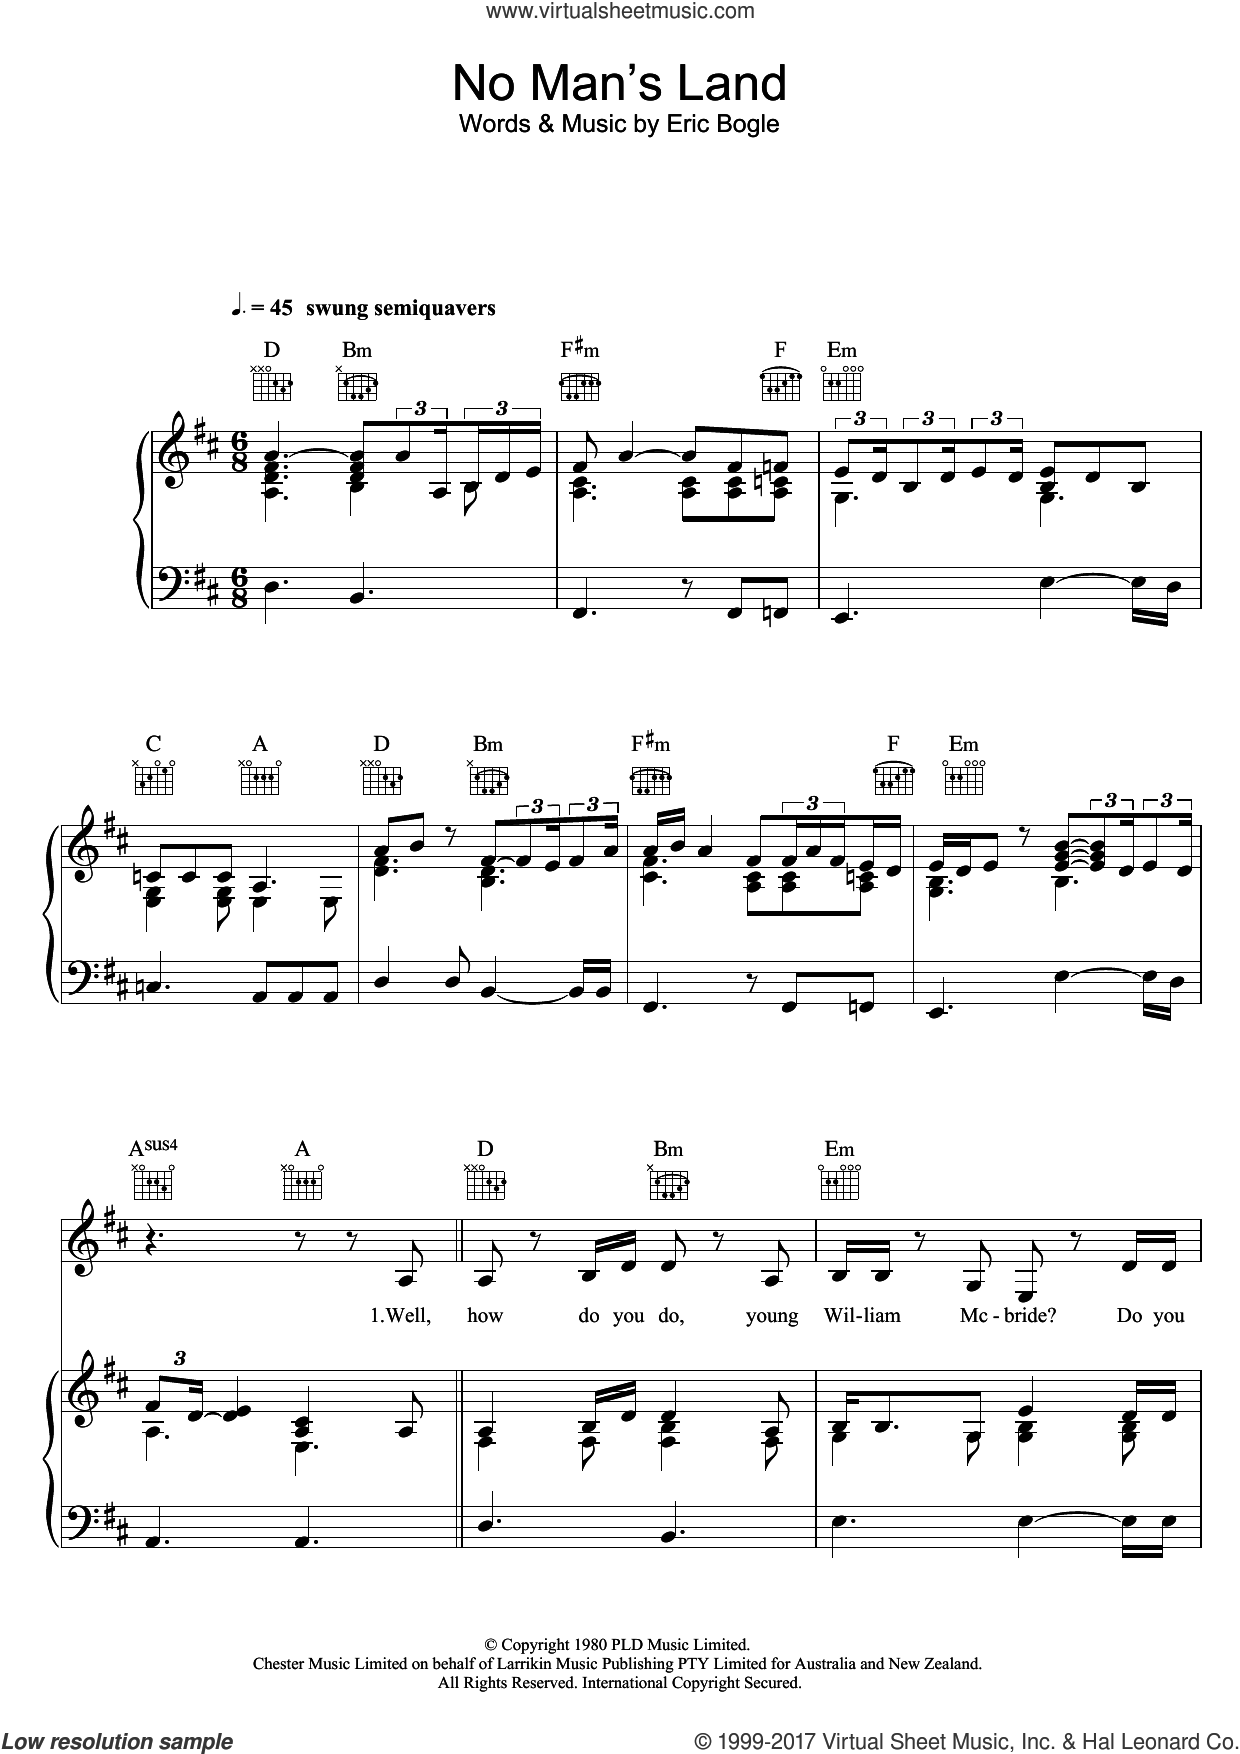 No Man's Land / The Green Fields Of France (feat. Jeff Beck) sheet music for voice, piano or guitar by Joss Stone, Jeff Beck and Eric Bogle, intermediate skill level